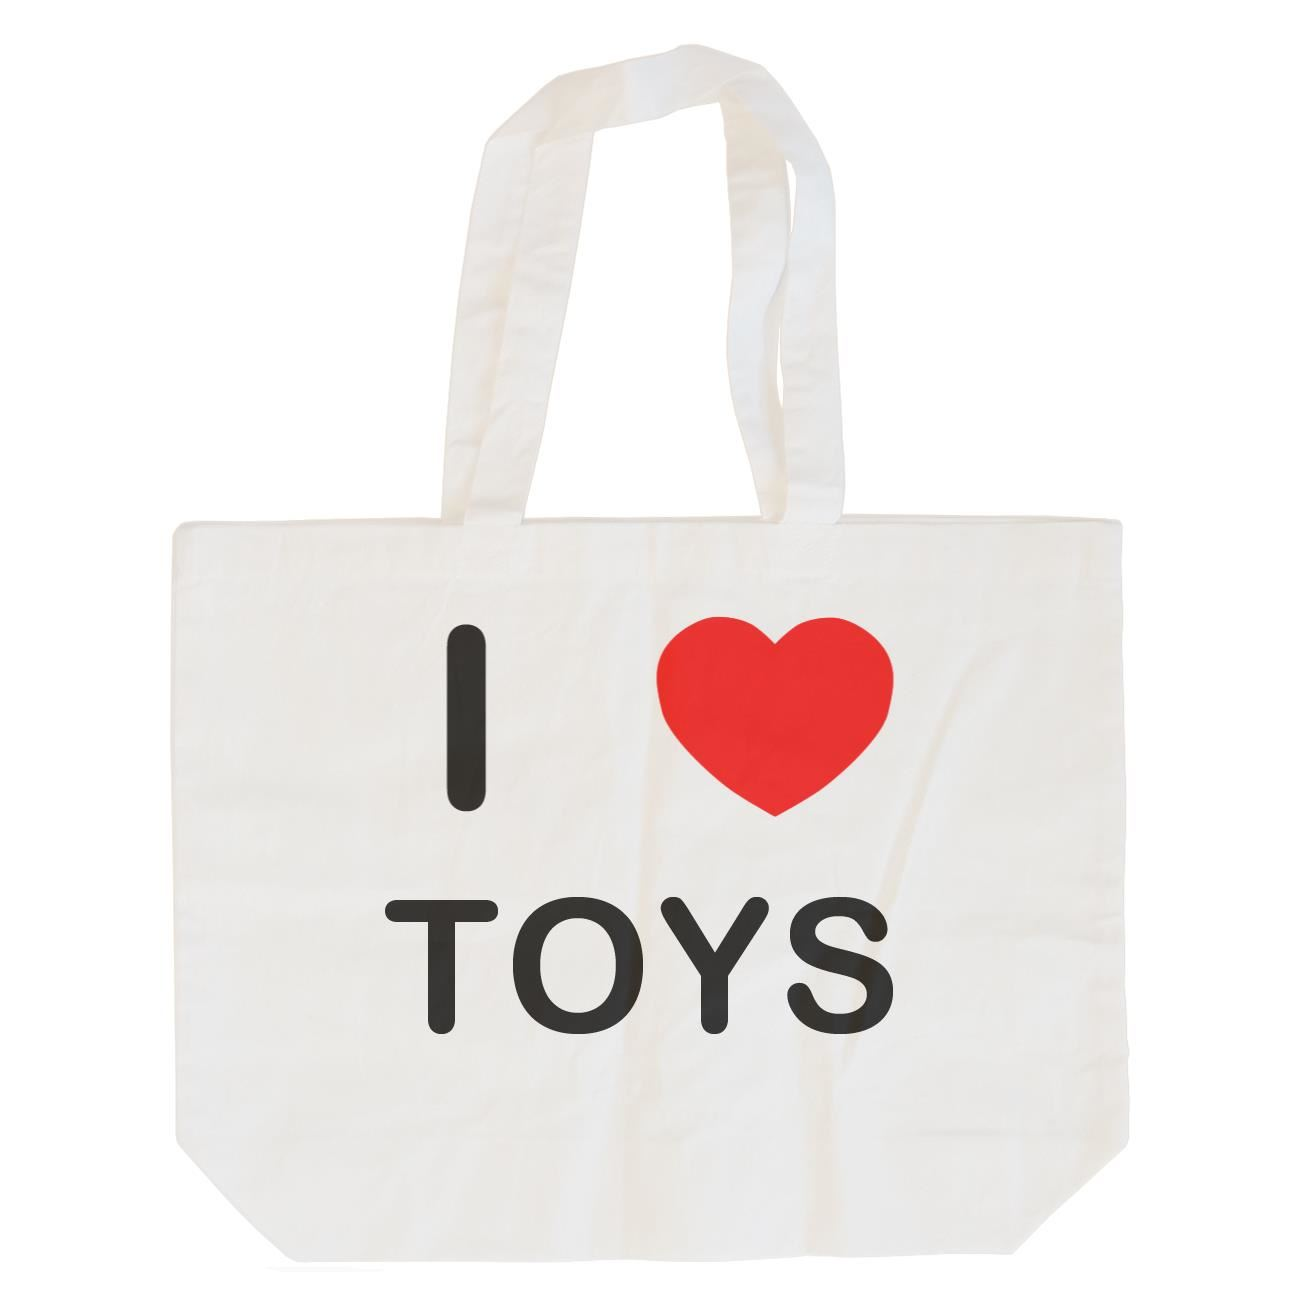 I Love Toys - Cotton Bag | Size choice Tote, Shopper or Sling